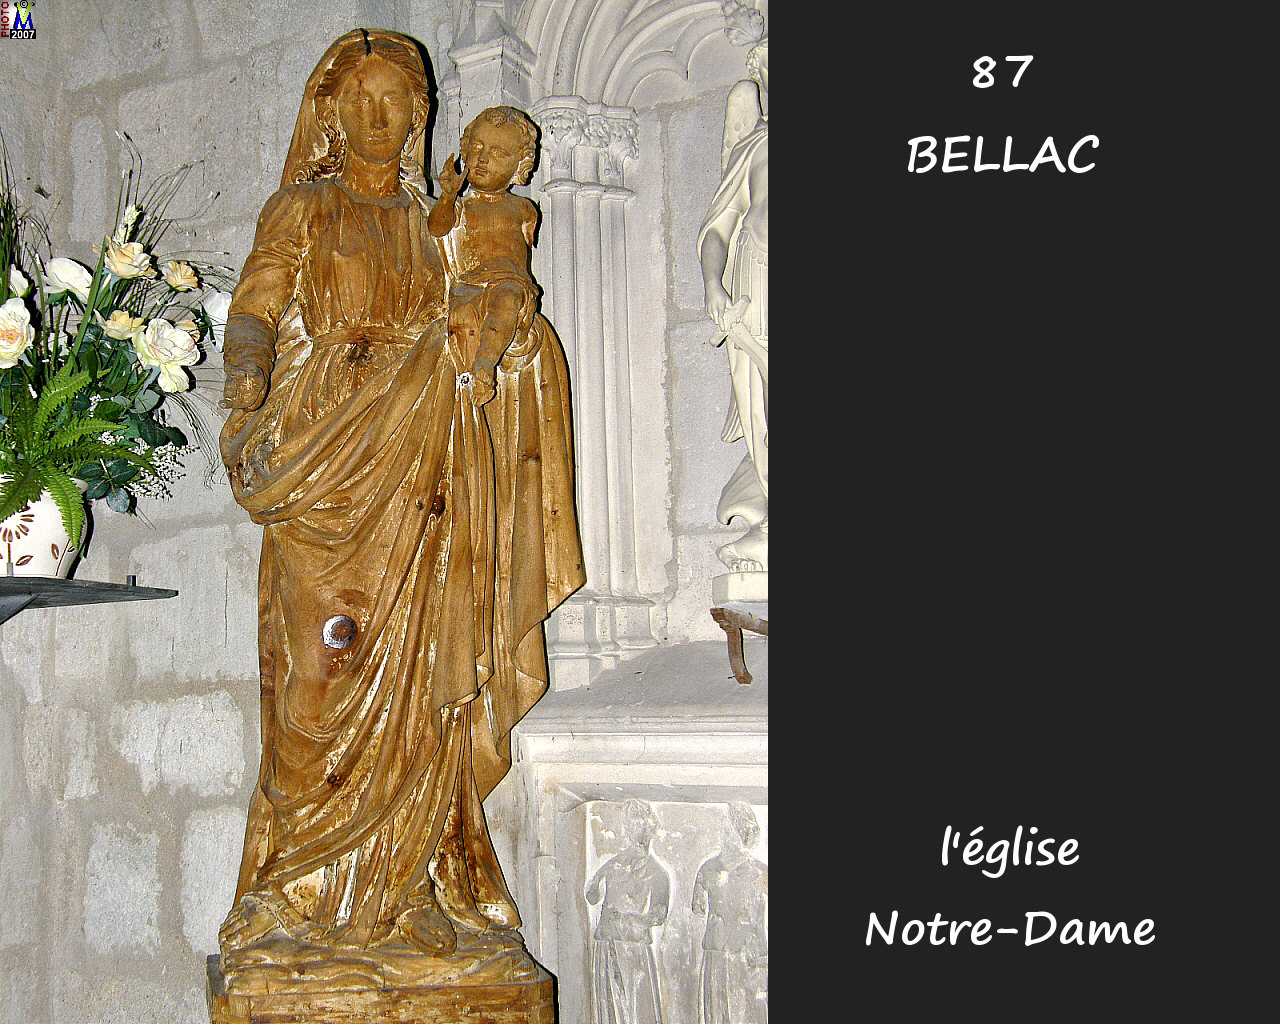 87BELLAC_eglise_216.jpg